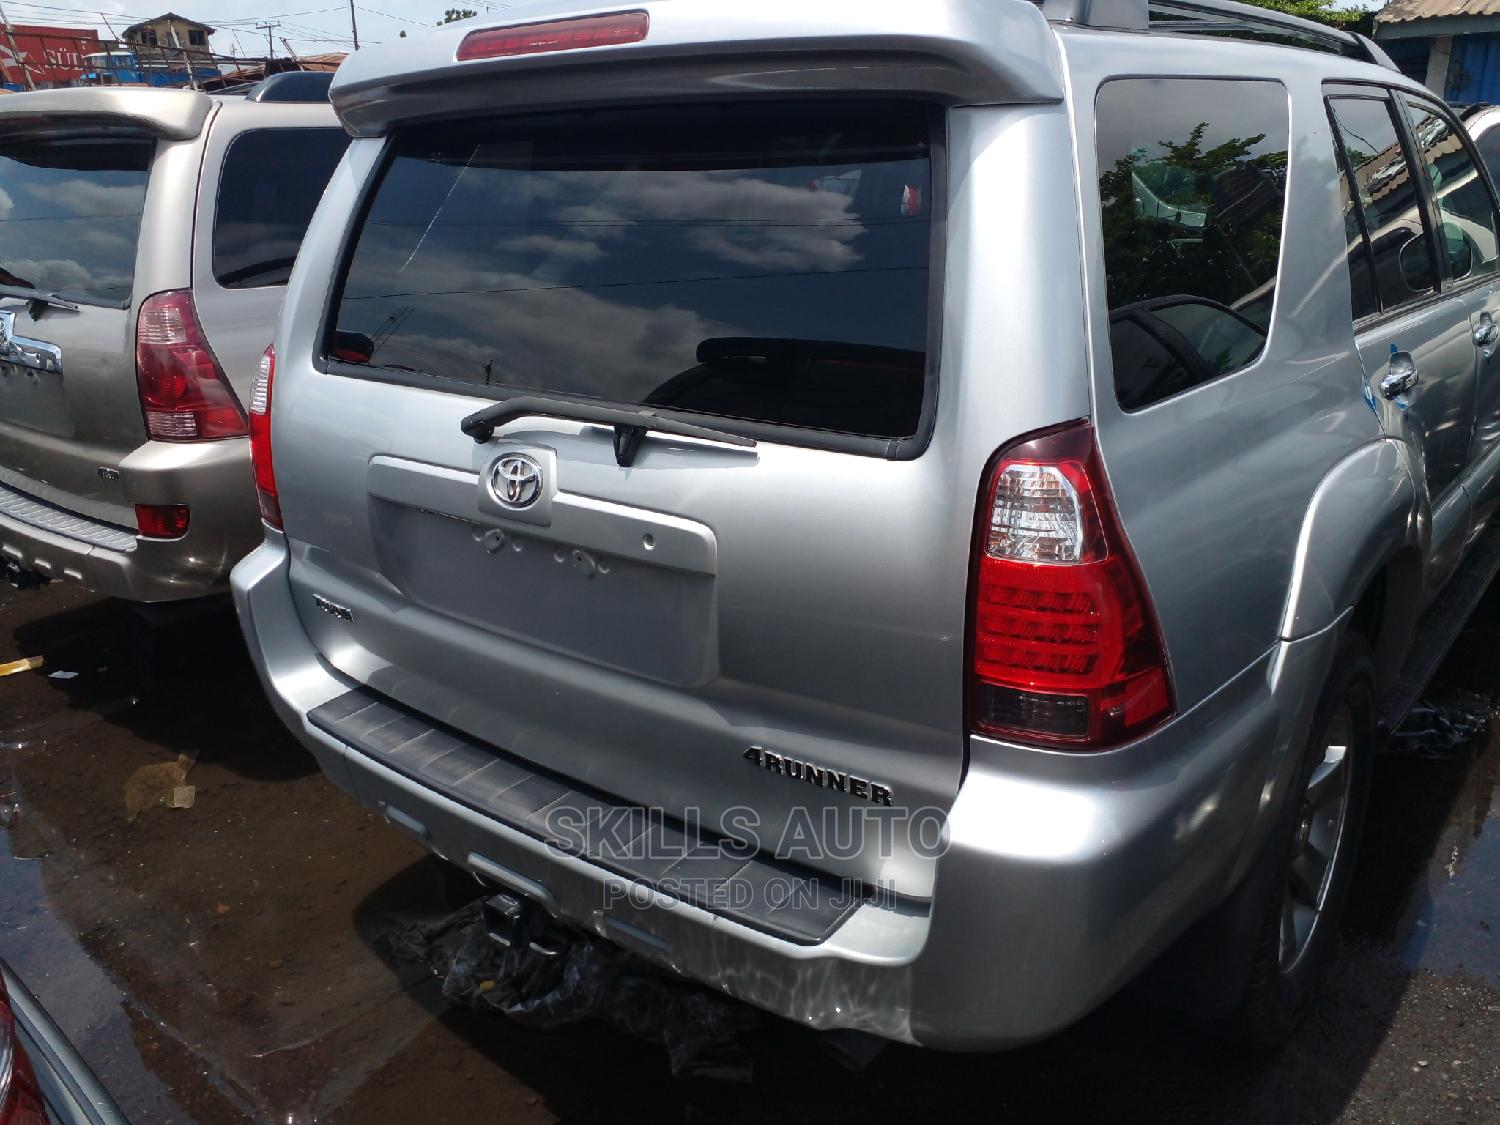 Archive: Toyota 4-Runner 2006 Limited V8 Silver